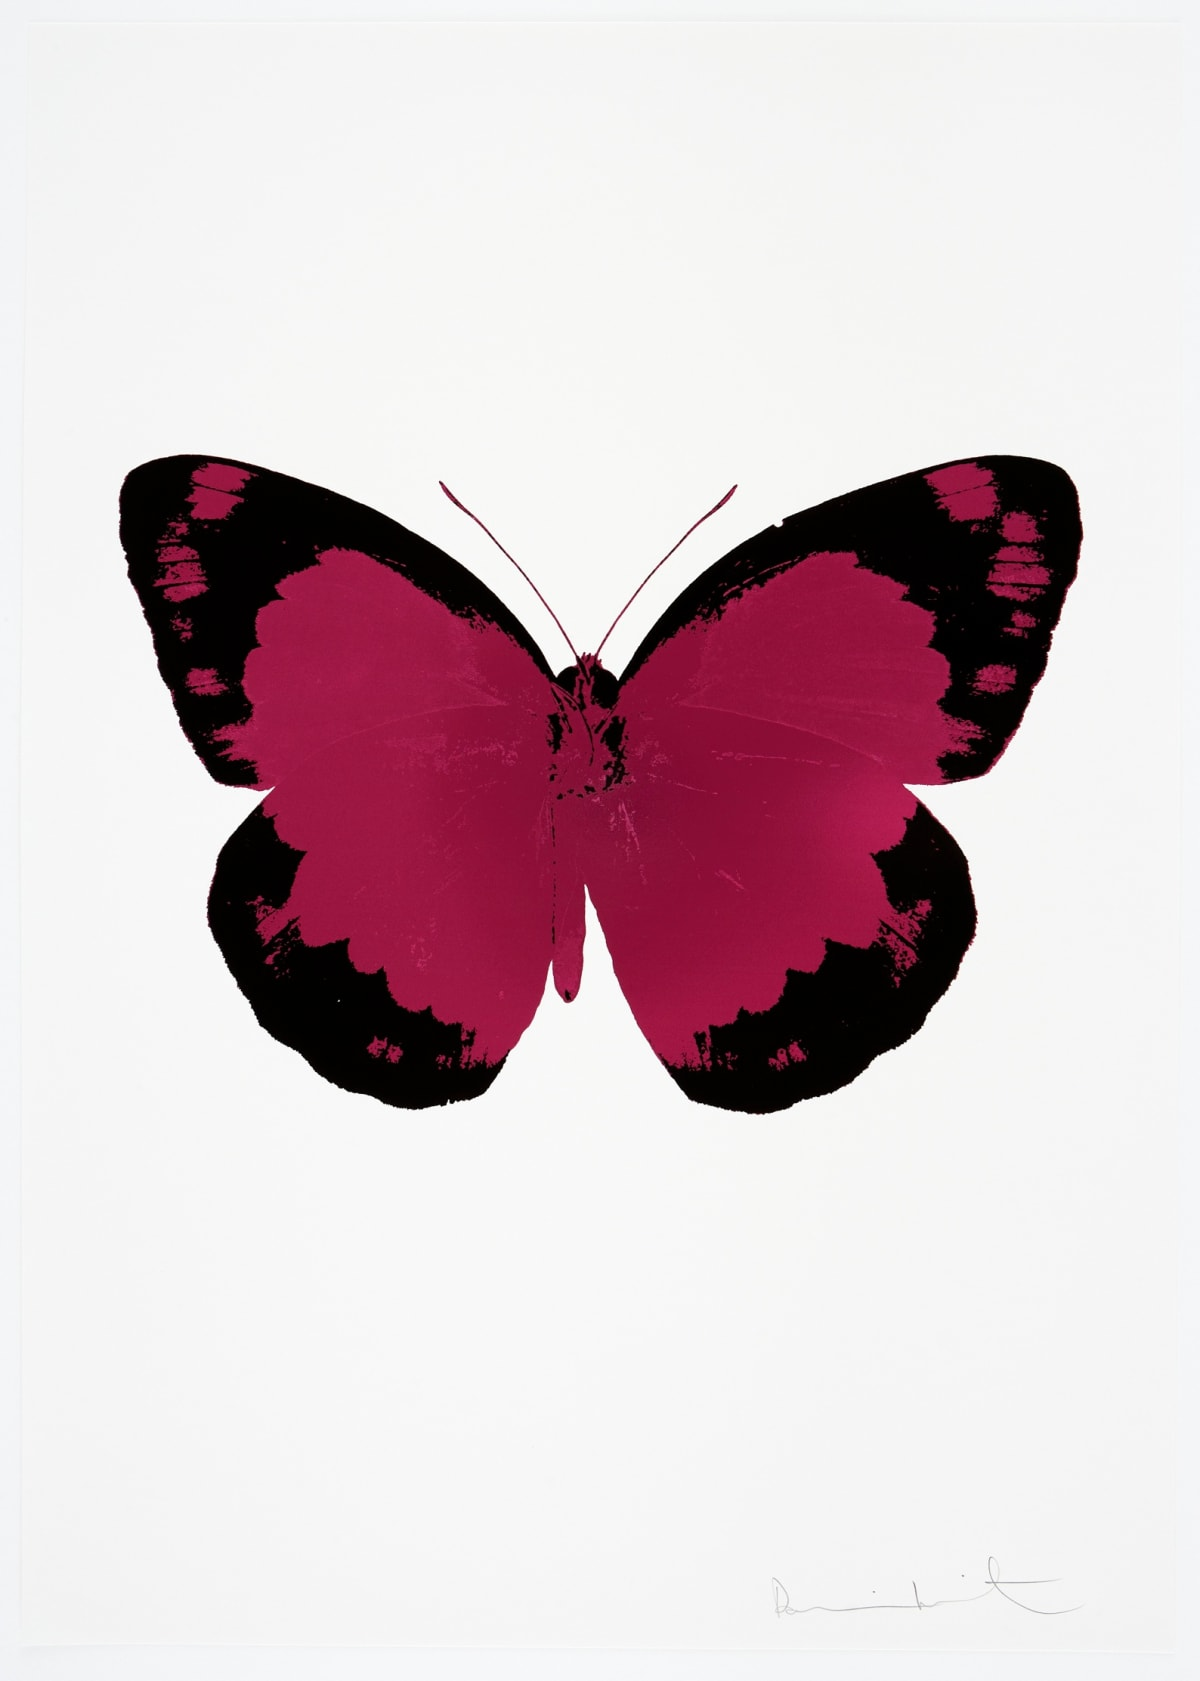 Damien Hirst The Souls II - Fuchsia Pink/Raven Black/Blind Impression, 2010 2 colour foil block on 300gsm Arches 88 archival paper. Signed and numbered. Published by Paul Stolper and Other Criteria 72 x 51cm OC7834 / 658-17 Edition of 15